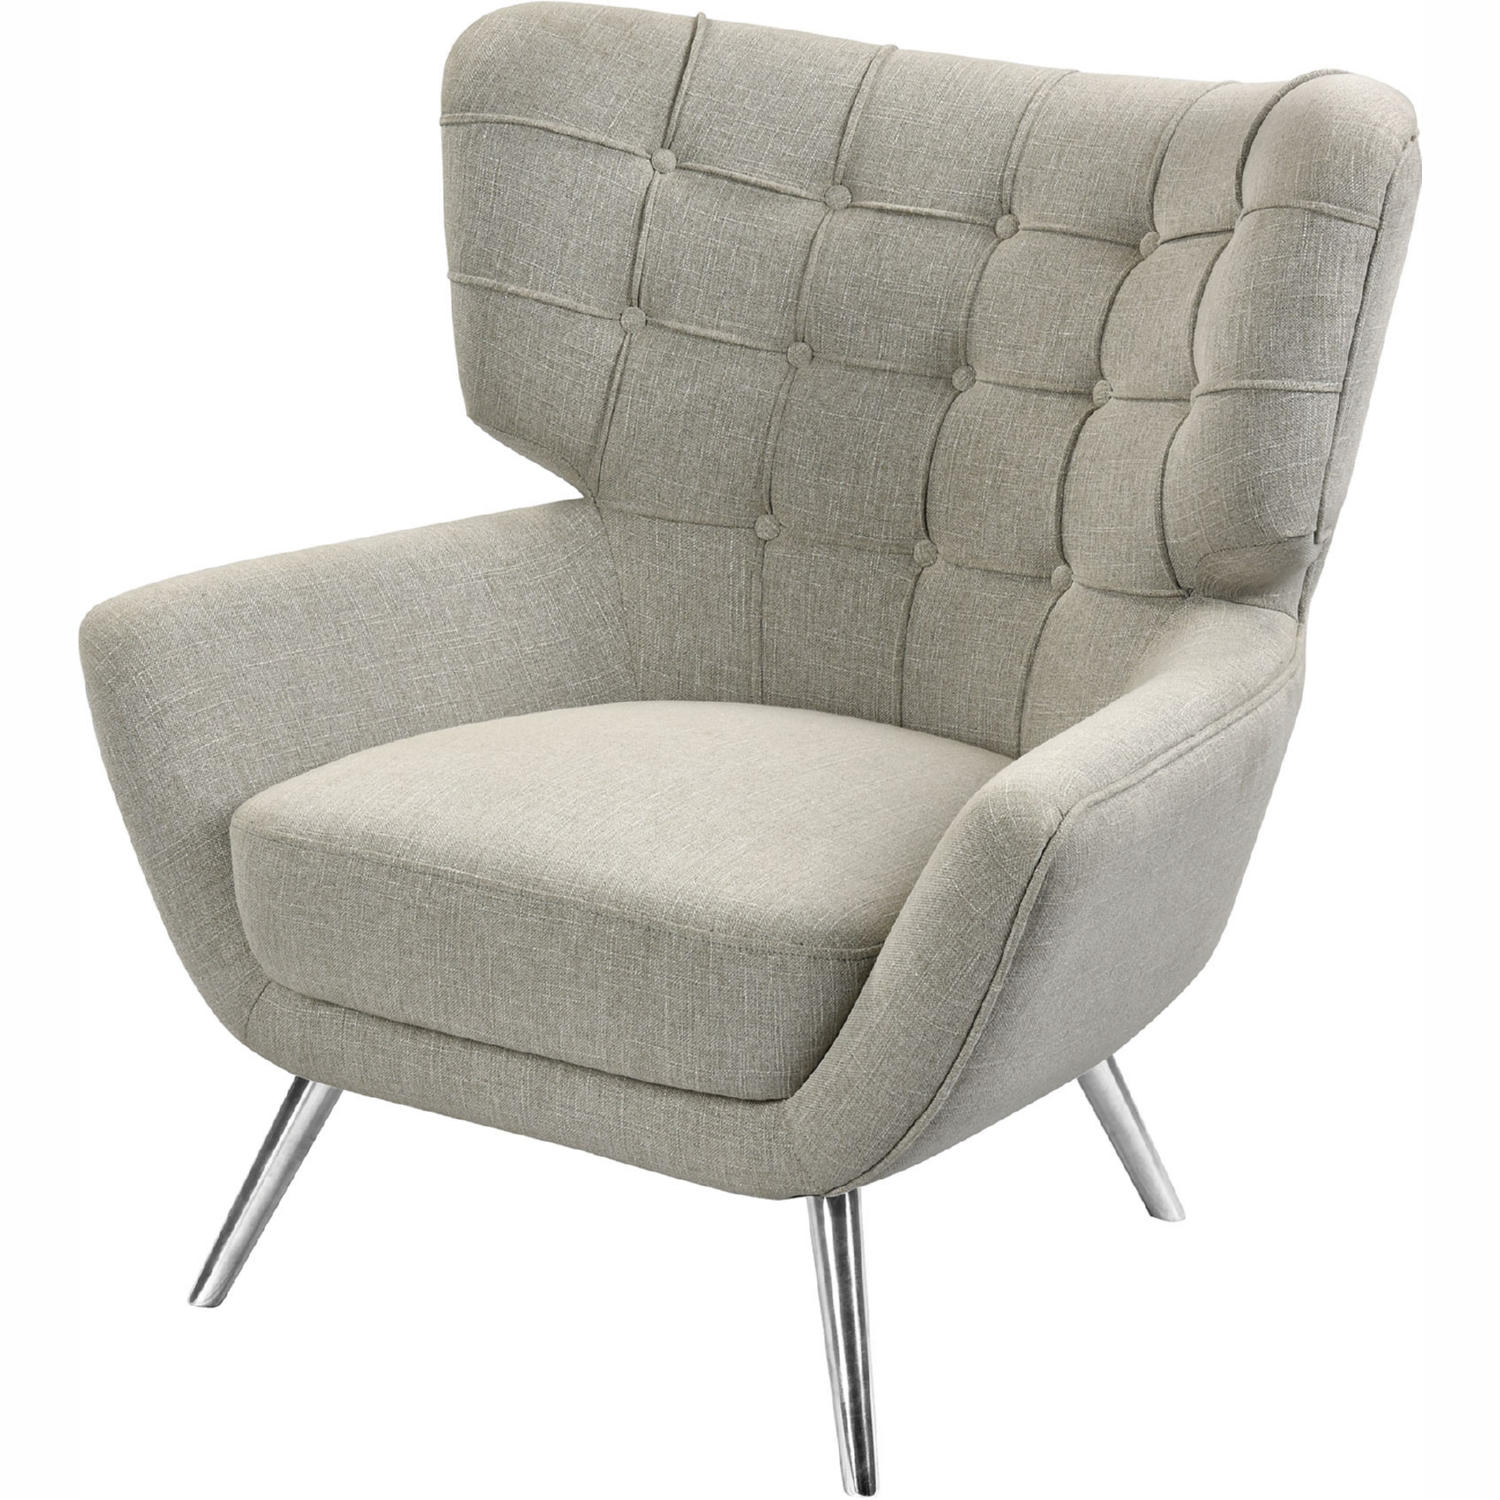 Determinative Accent Chair In Grey Linen Stainless Steel By Elk Home